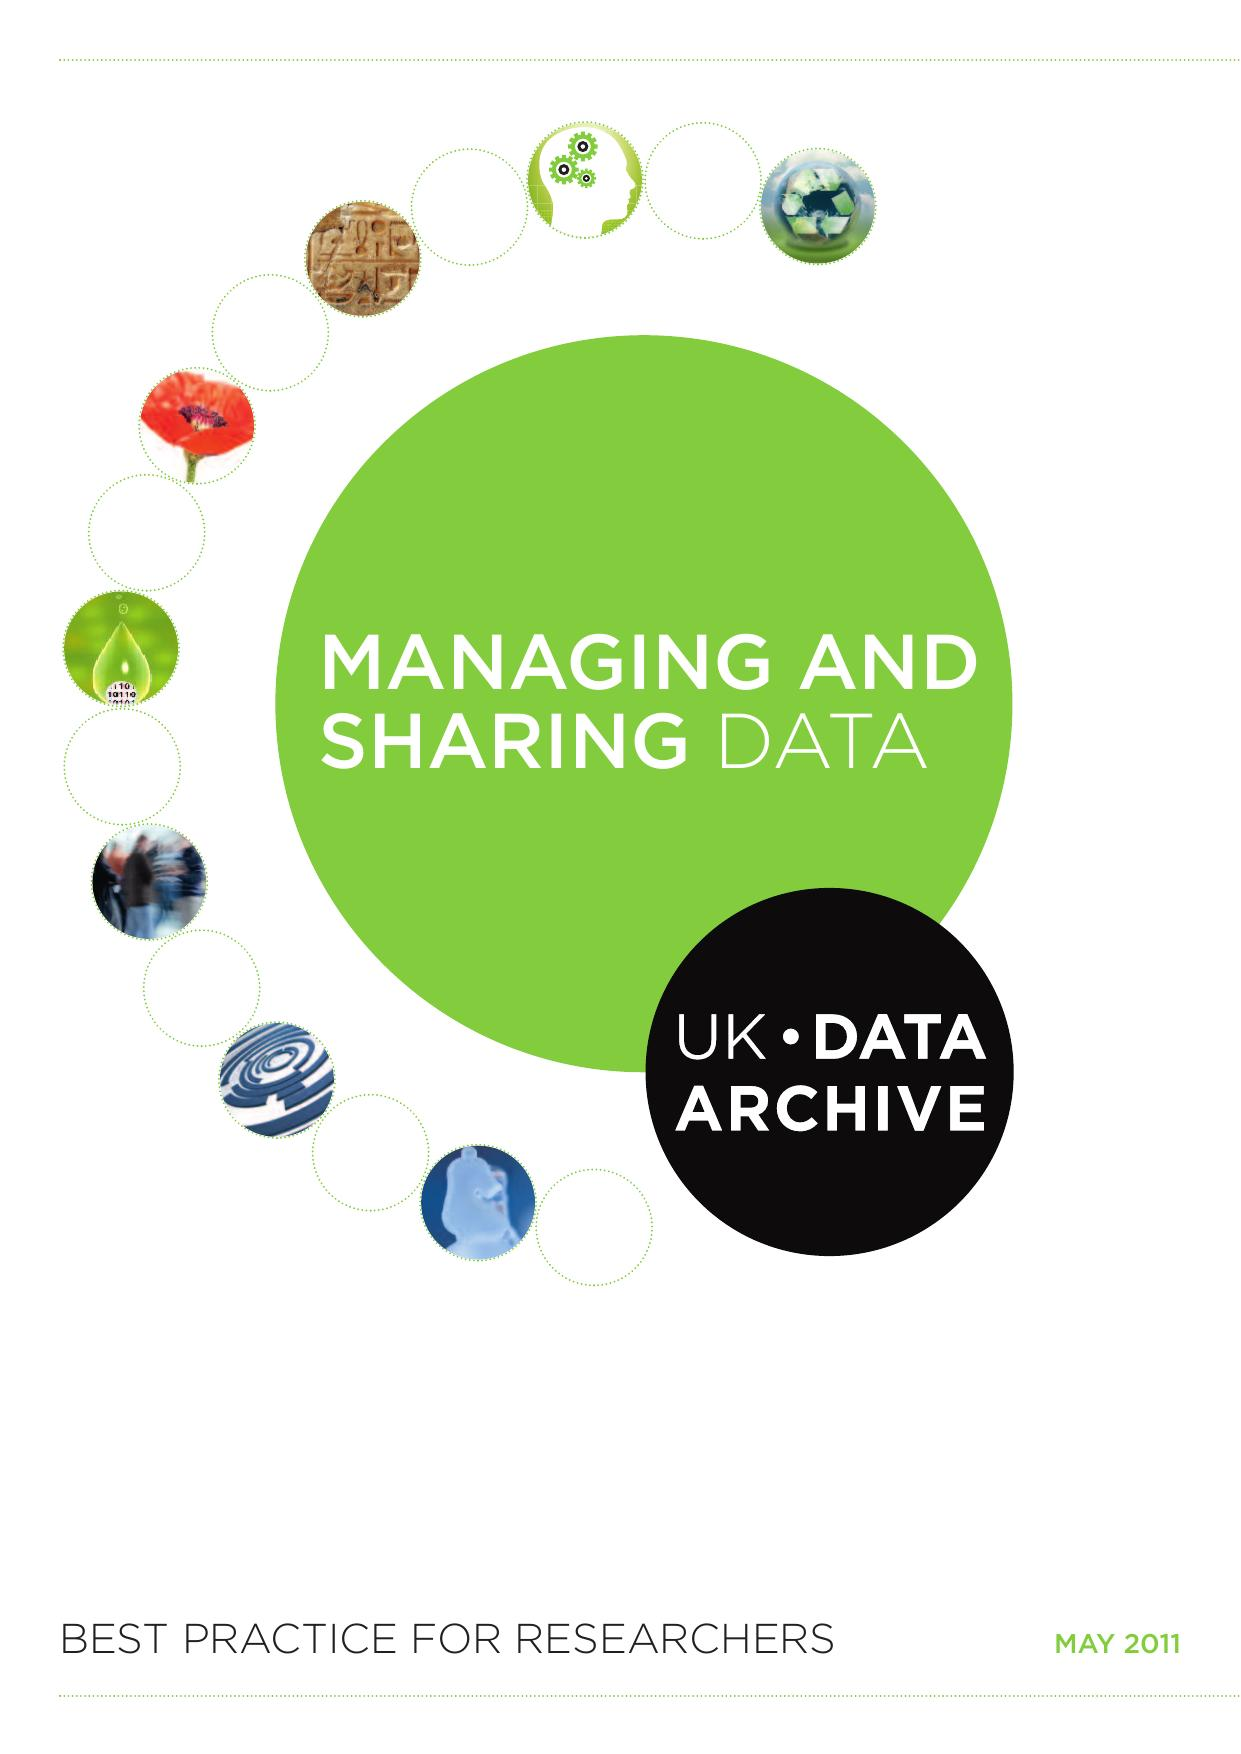 Managing and sharing data best practice for researchers: UK Data Archive